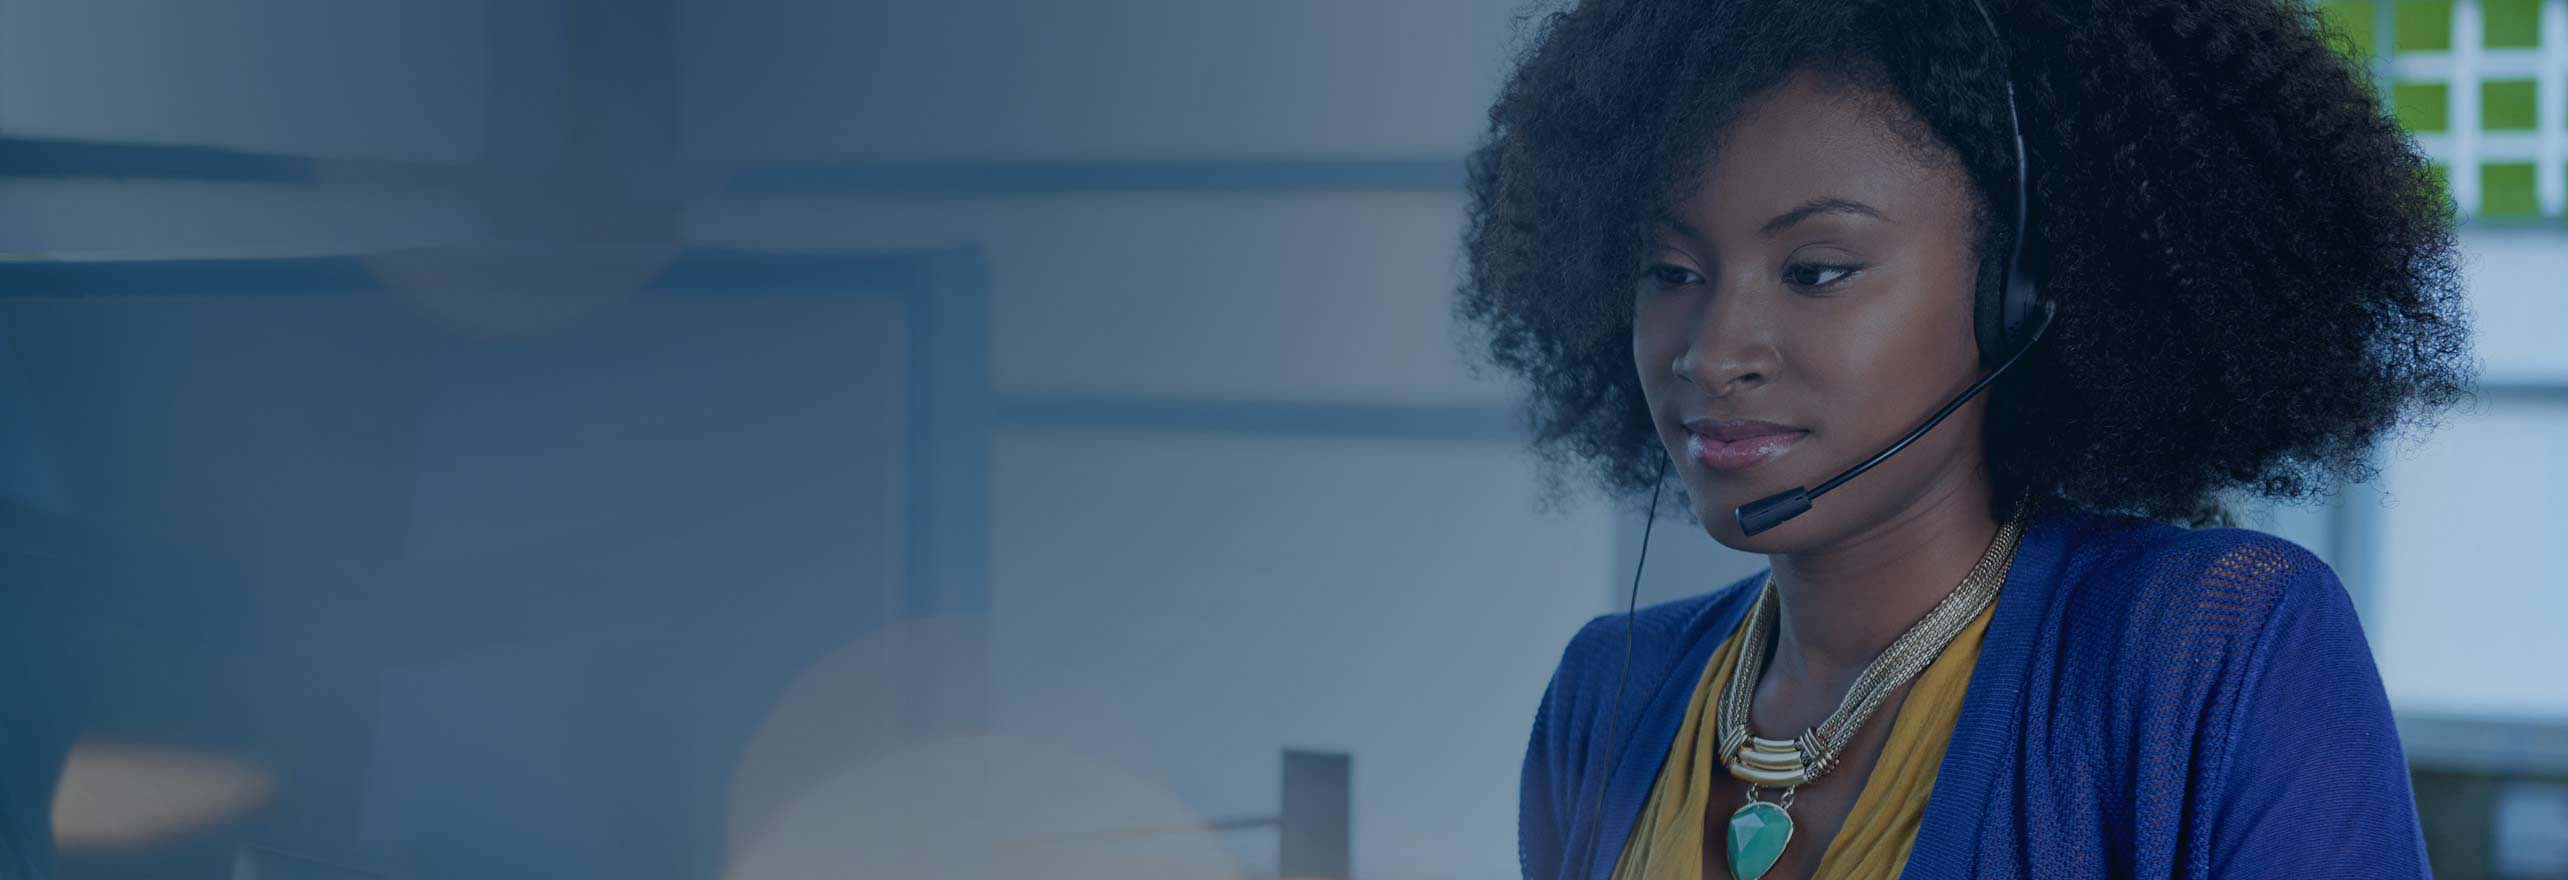 African American woman working using a inbound call center platform wearing a headset